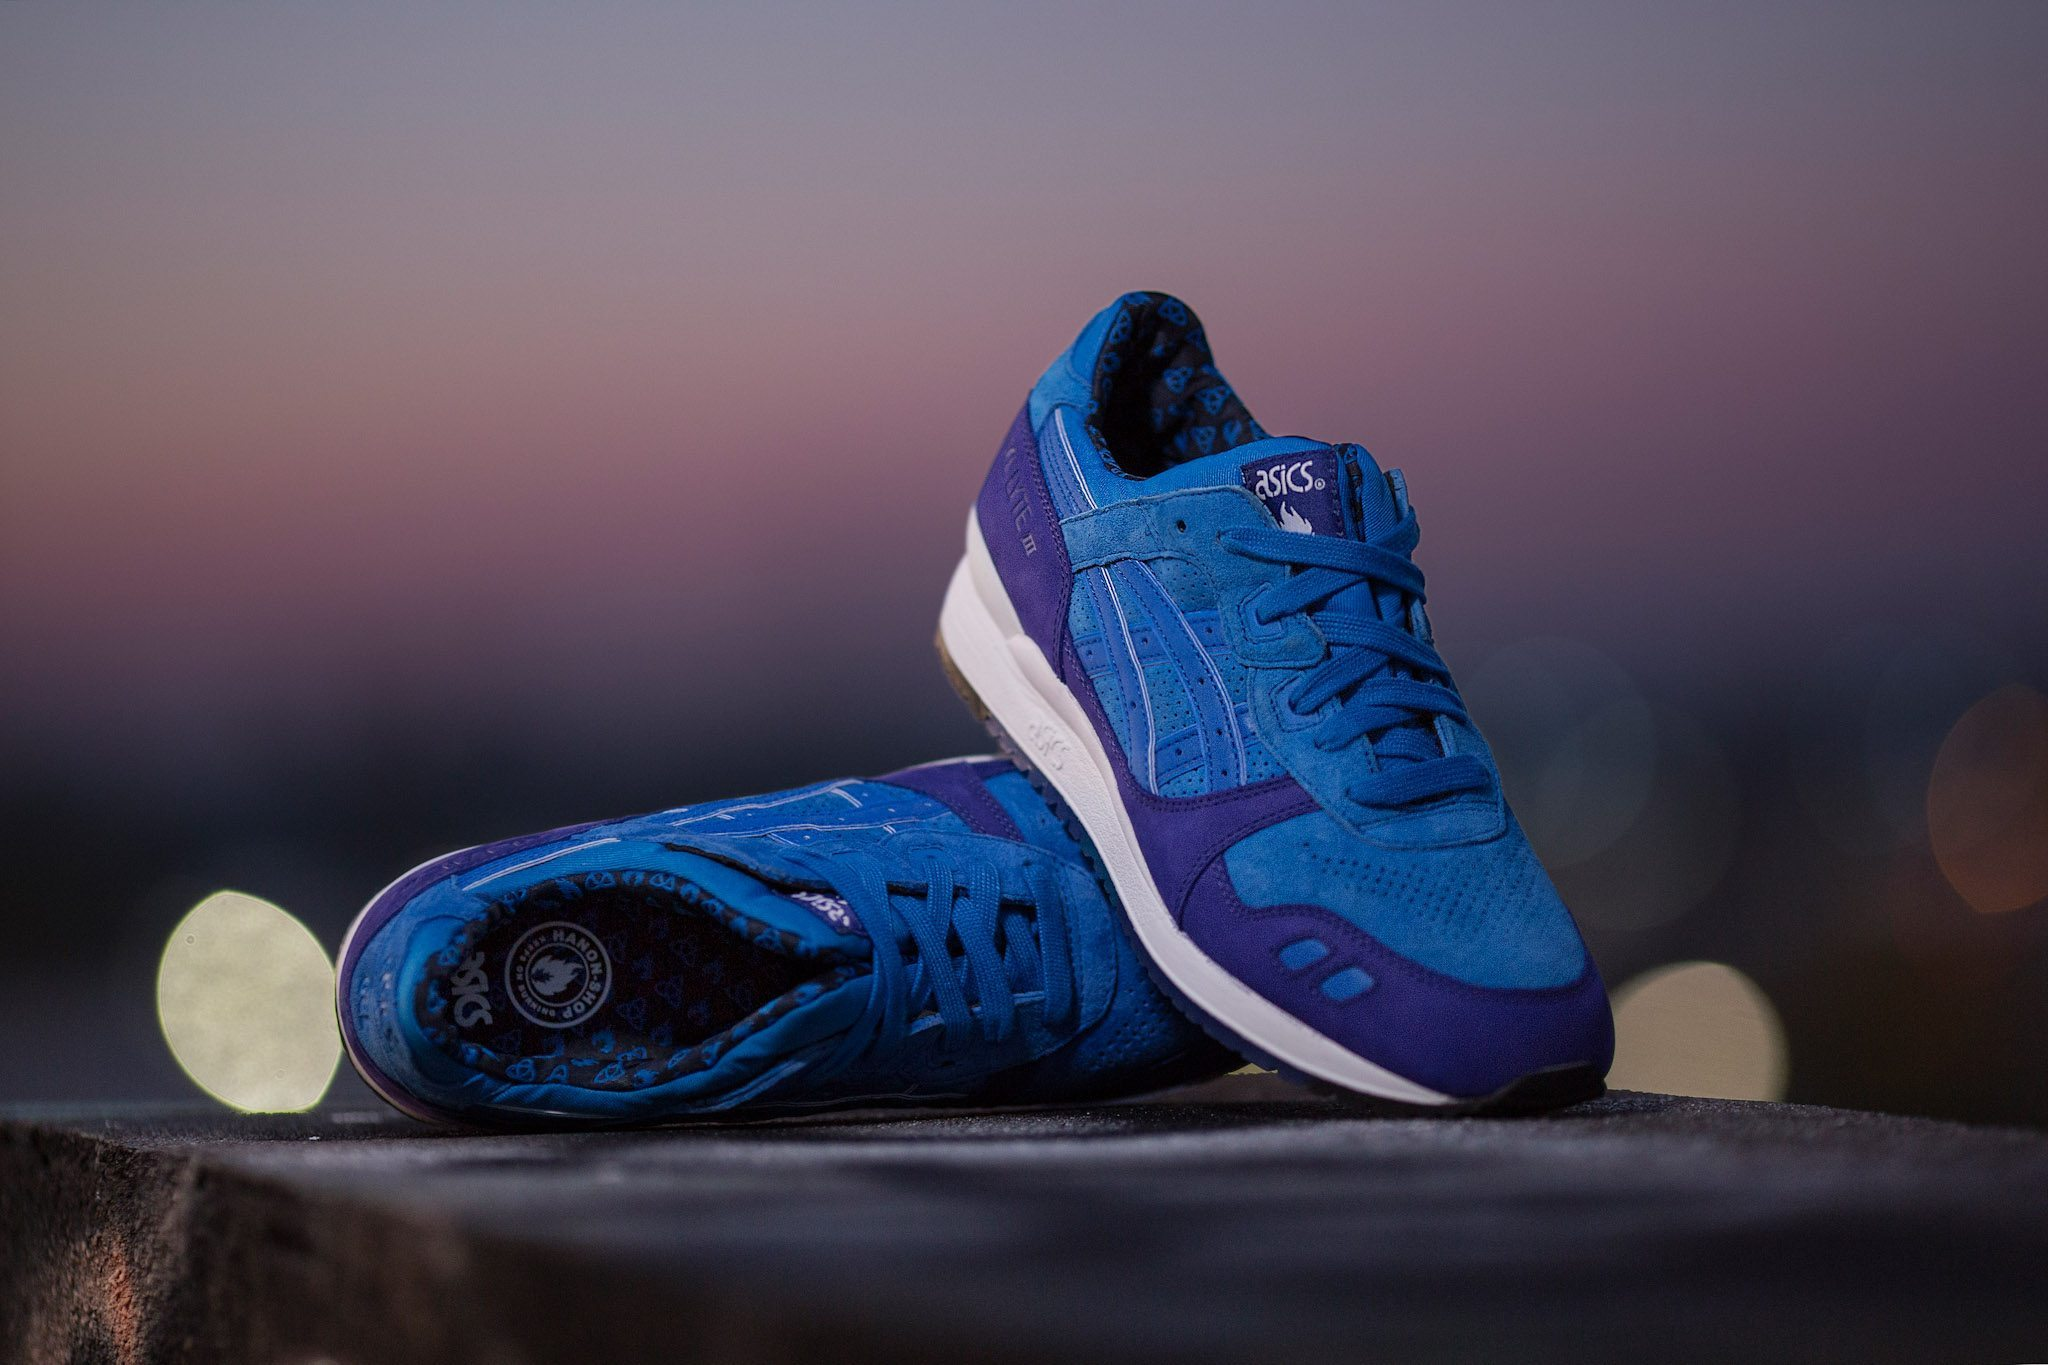 HANON x ASICS Gel Lyte III Light Night 5